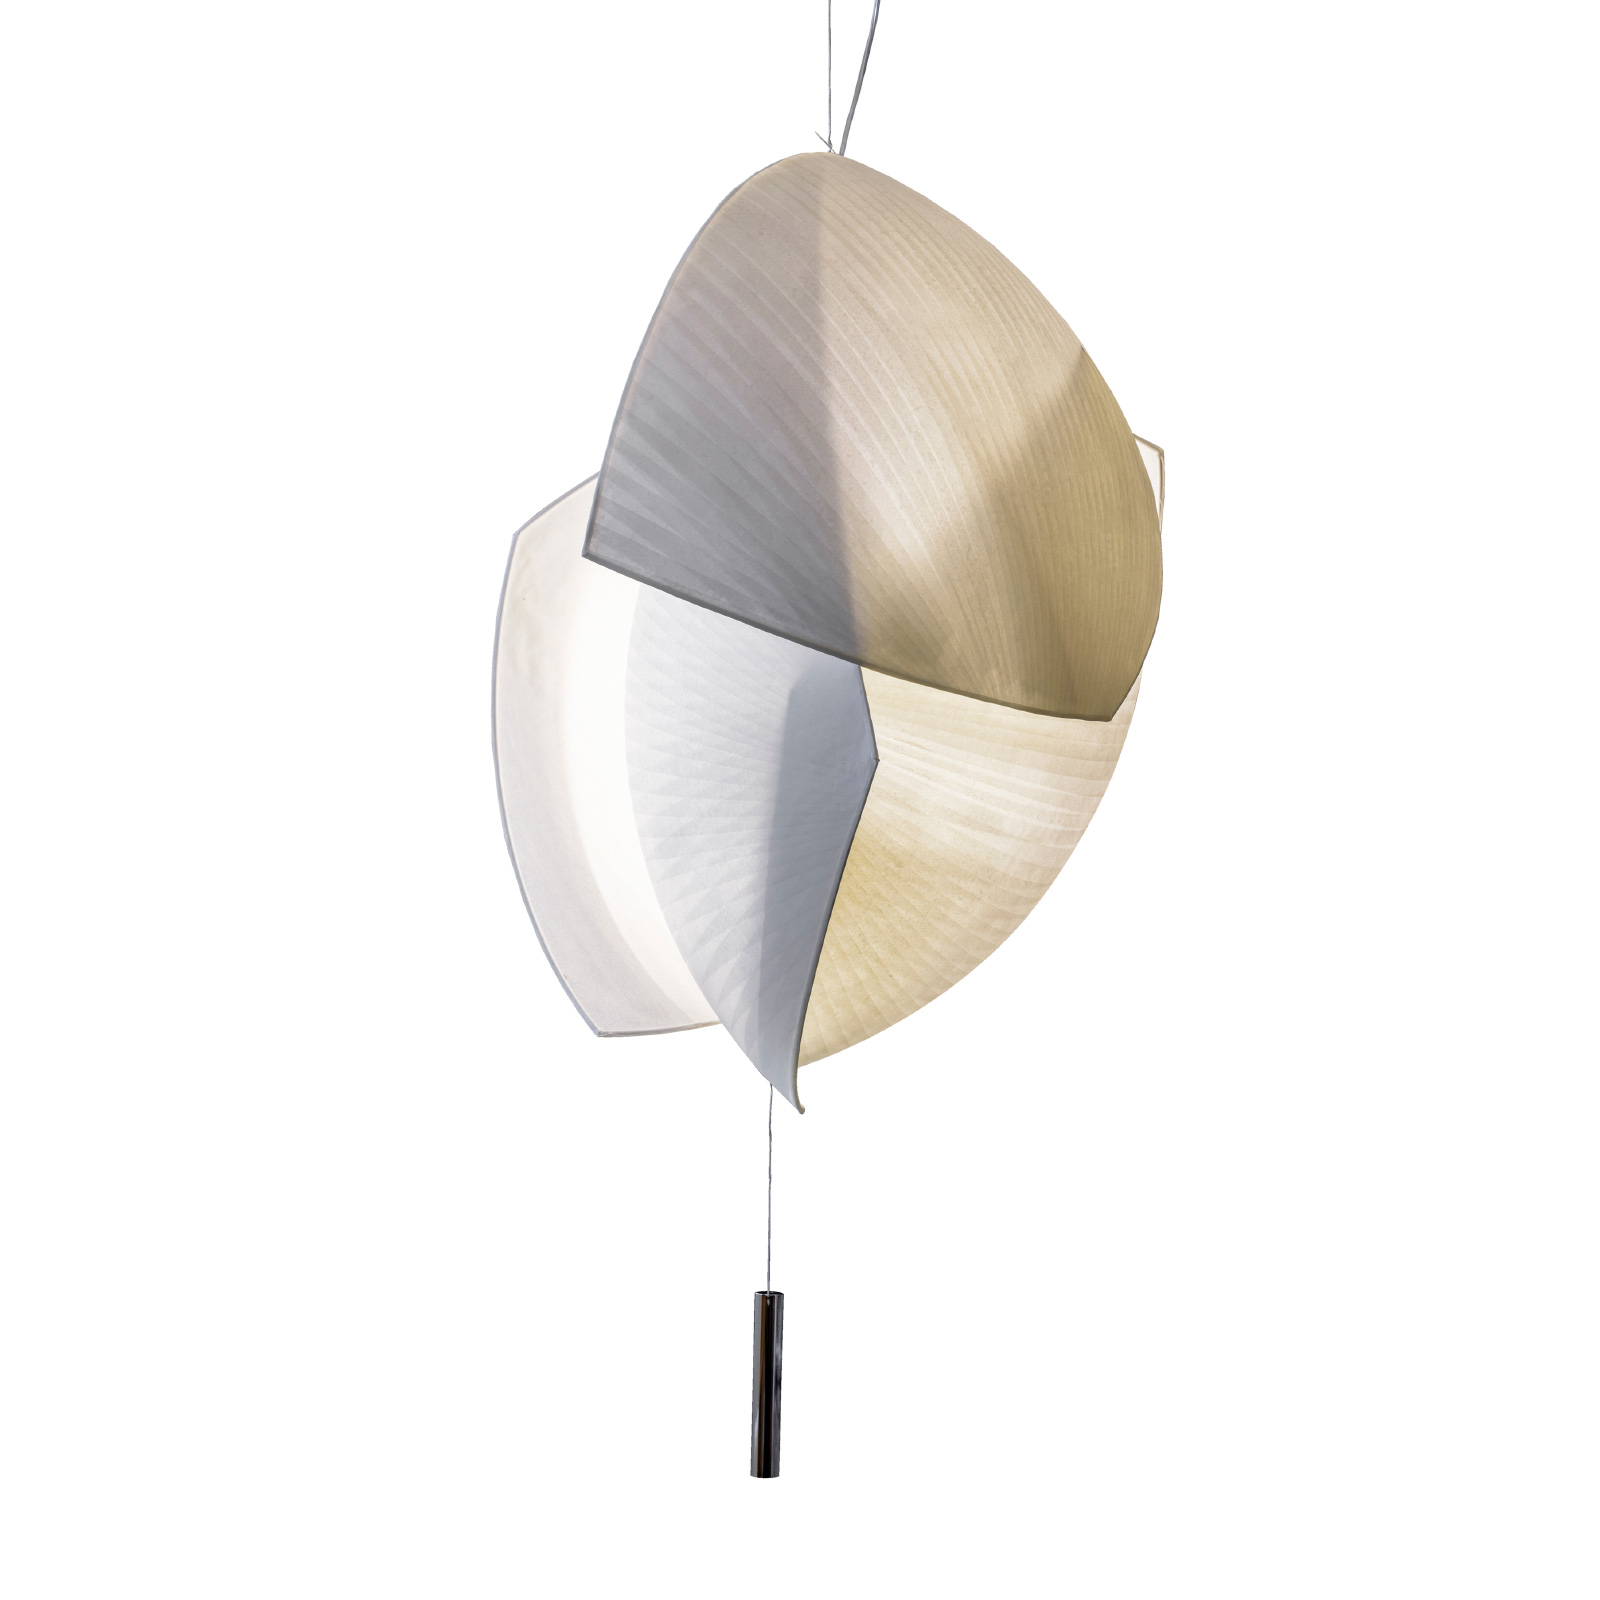 Grok Voiles suspension LED 95x70 cm, coupure phase